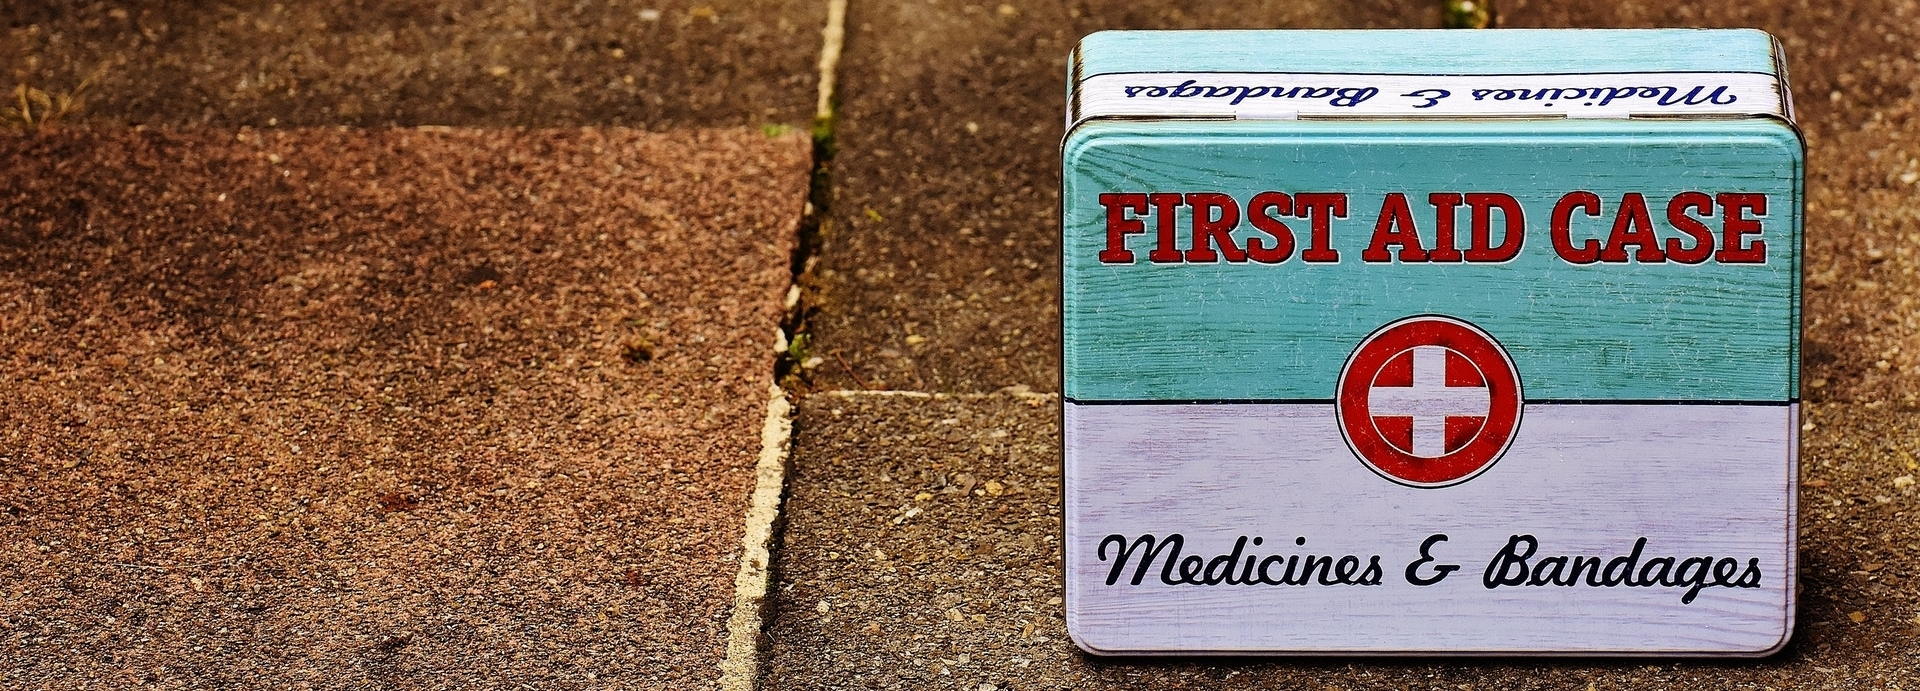 First Aid and Crisis Care